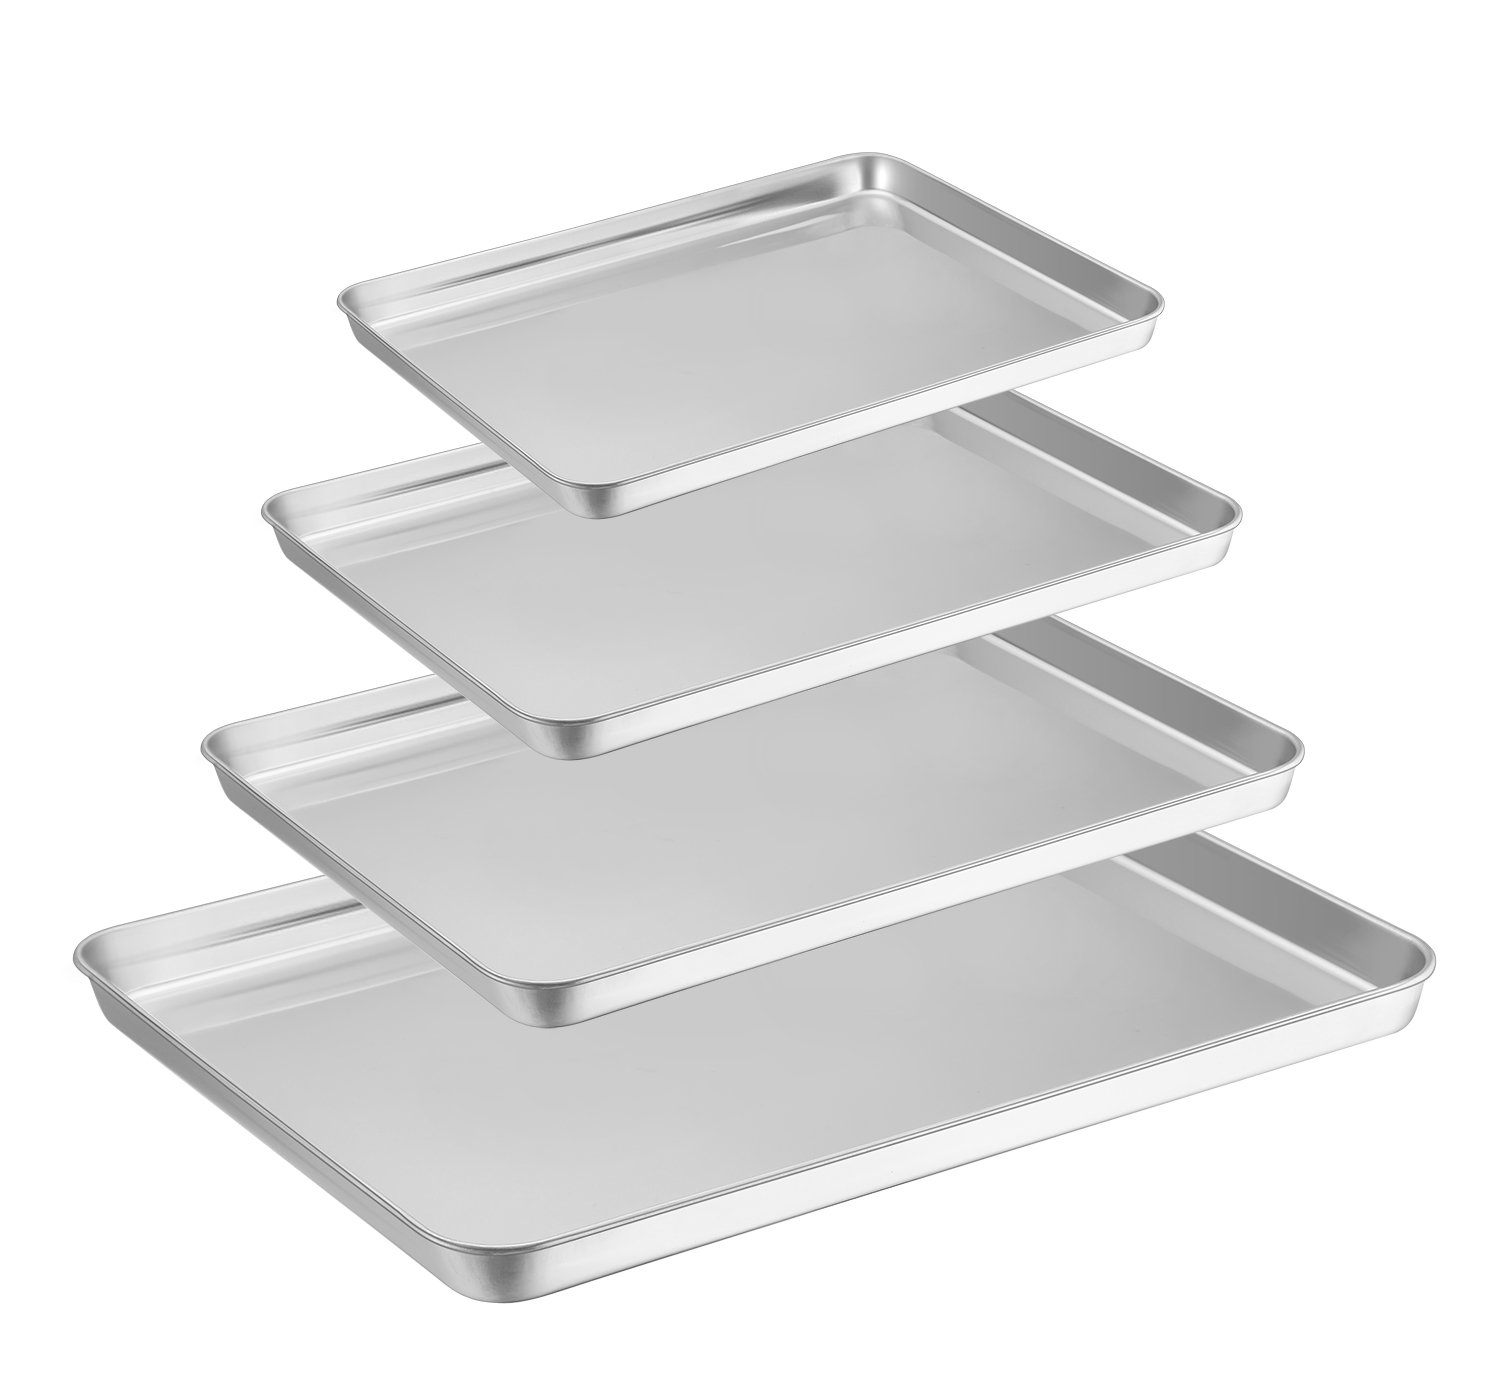 Baking Tray Set of 4, HaWare Stainless Steel Baking Sheet –Rimmed Pan Baking Sets -Healthy & Non Toxic, Easy Clean & Dishwasher Safe